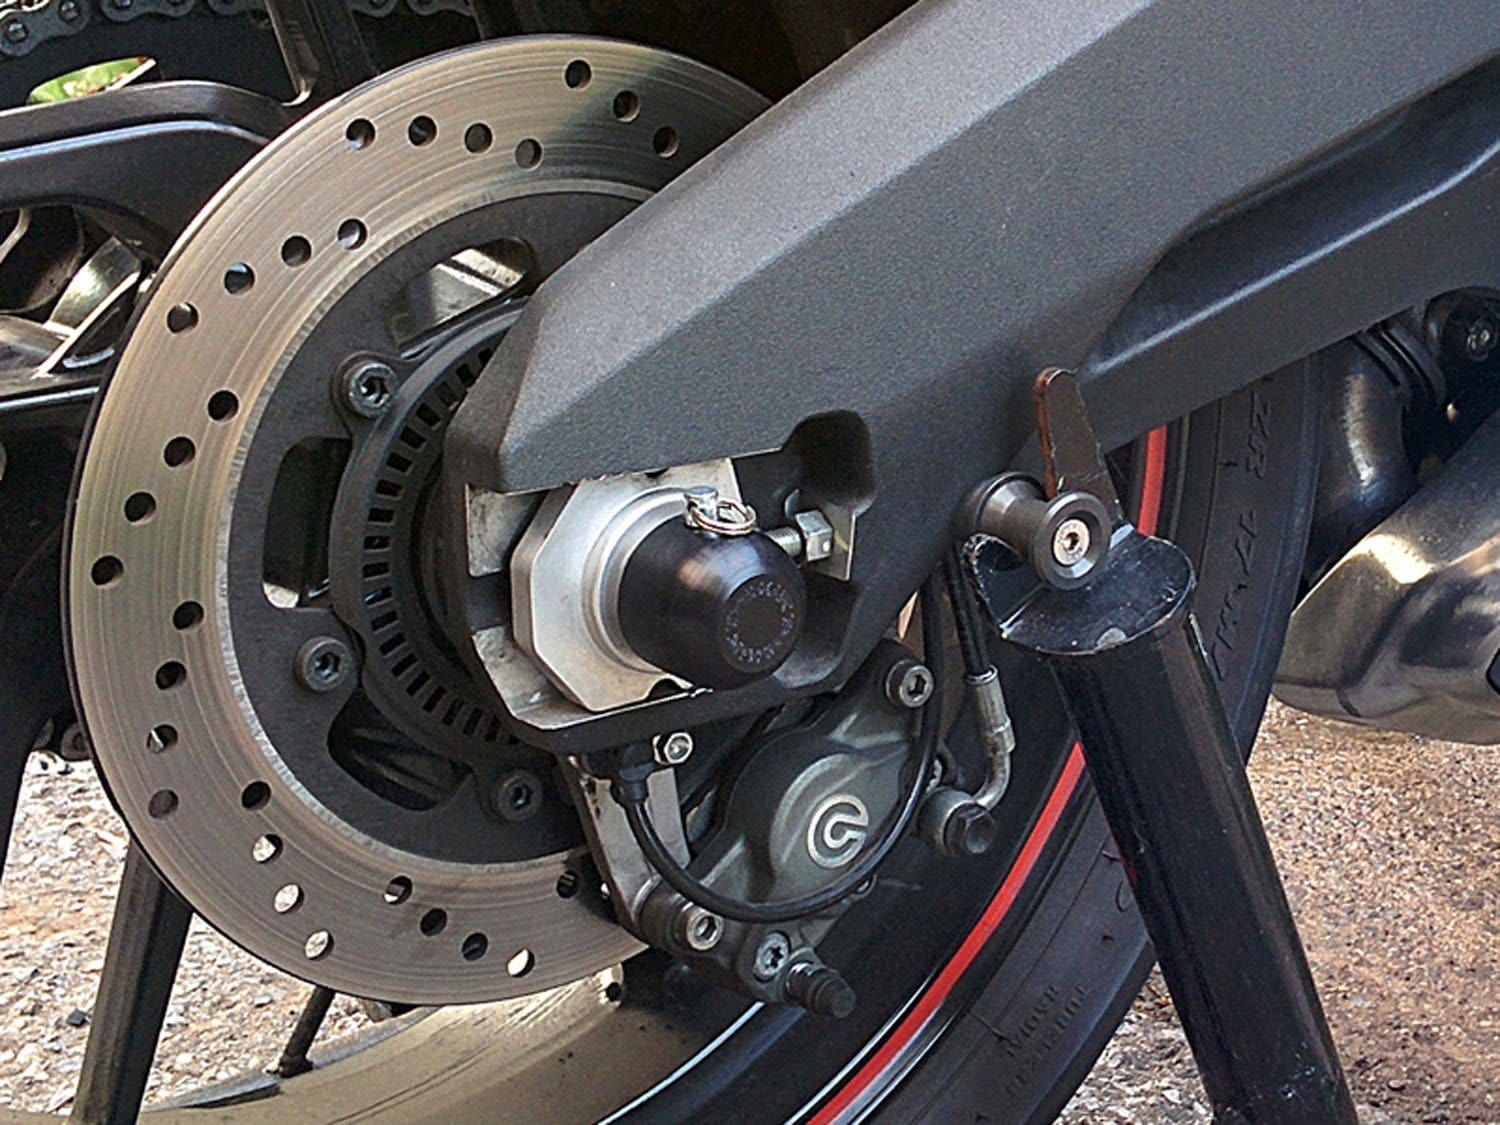 45-0649R Ducati 899 '14-17, 821 Monster Rear Axle Slider Kit Assembly - Woodcraft Technologies - Motorcycle Parts